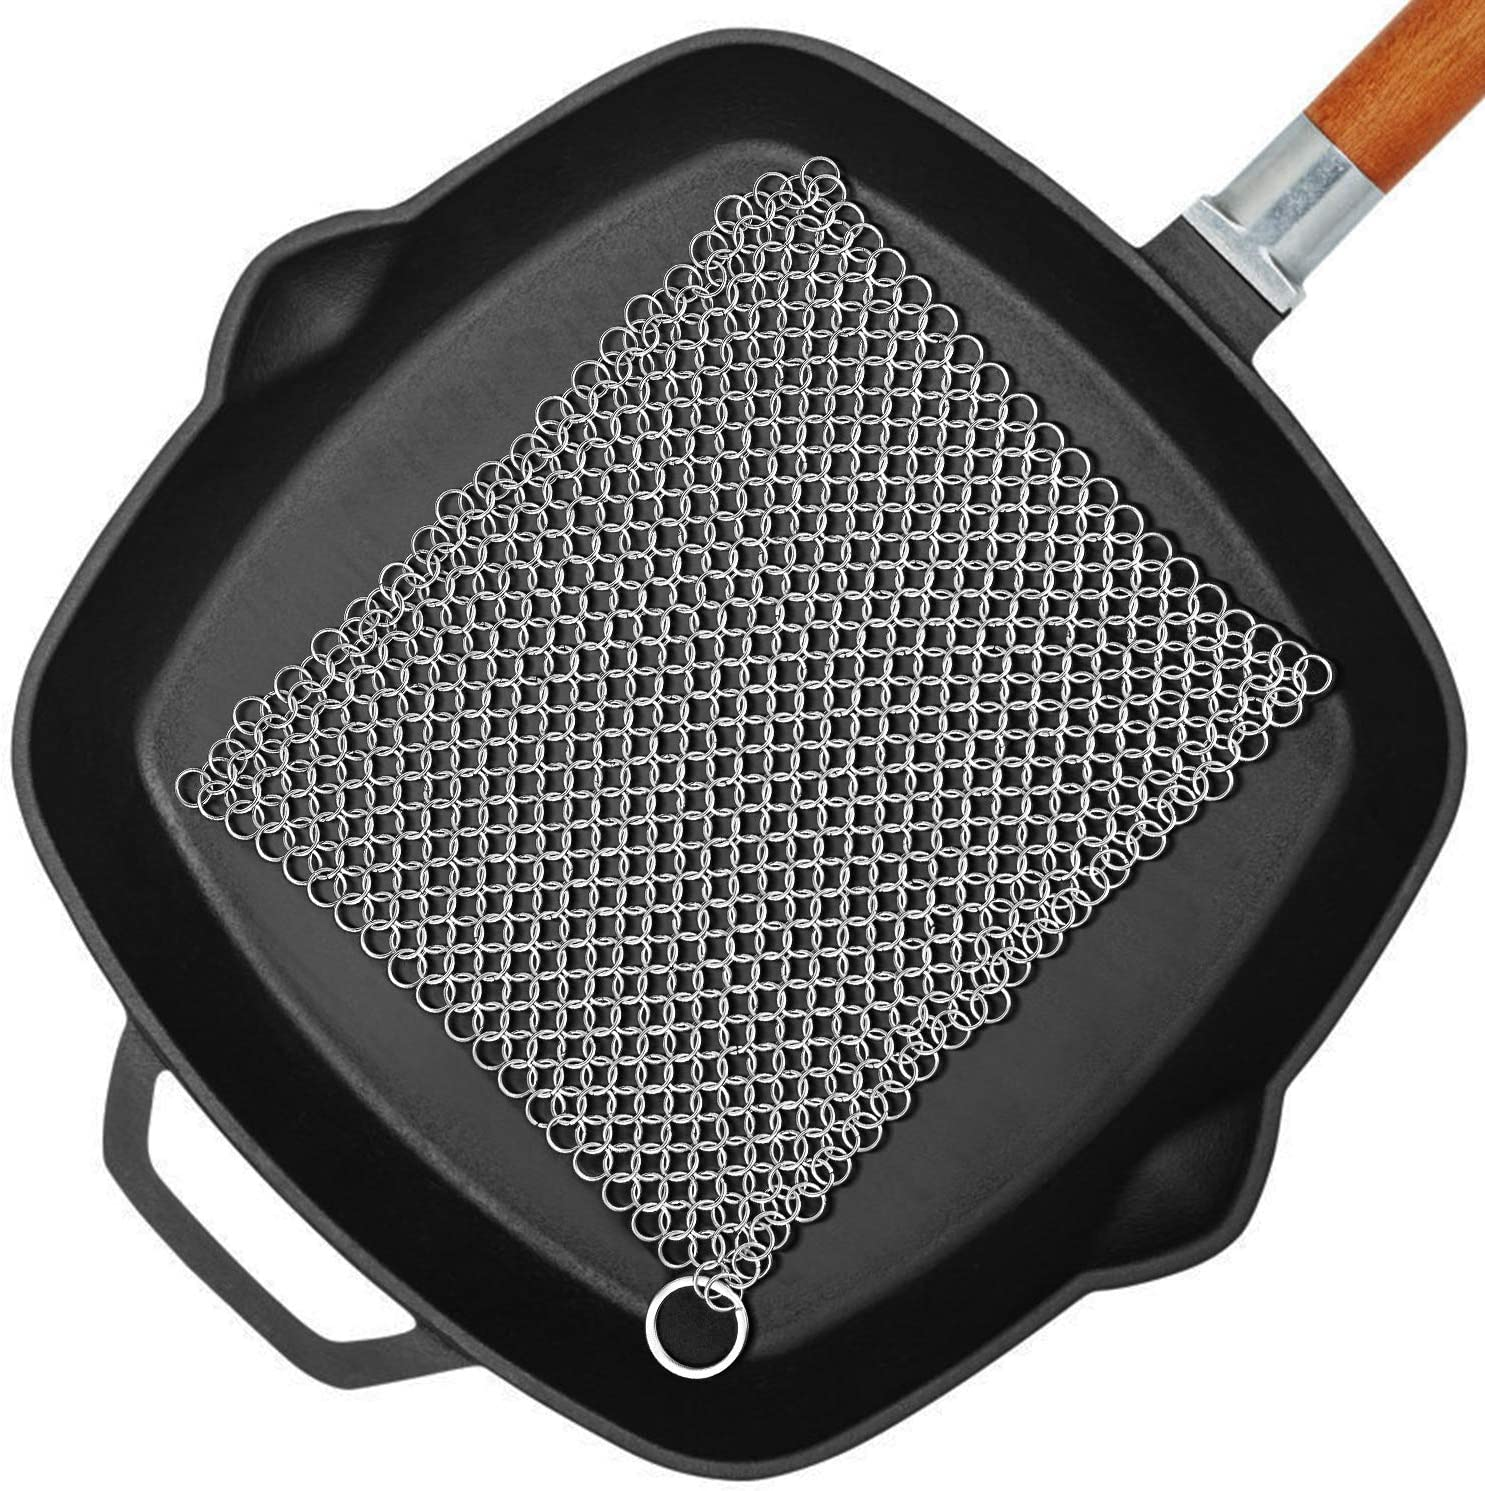 "Amagabeli 8"" x 8"" 316 Stainless Steel Cast Iron Cleaner Chainmail Scrubber for Cast Iron Pan Skillet Cleaner for Dishes Glass Pre-Seasoned Cast Iron Pot Seasoning Protection Cookware Accessories"